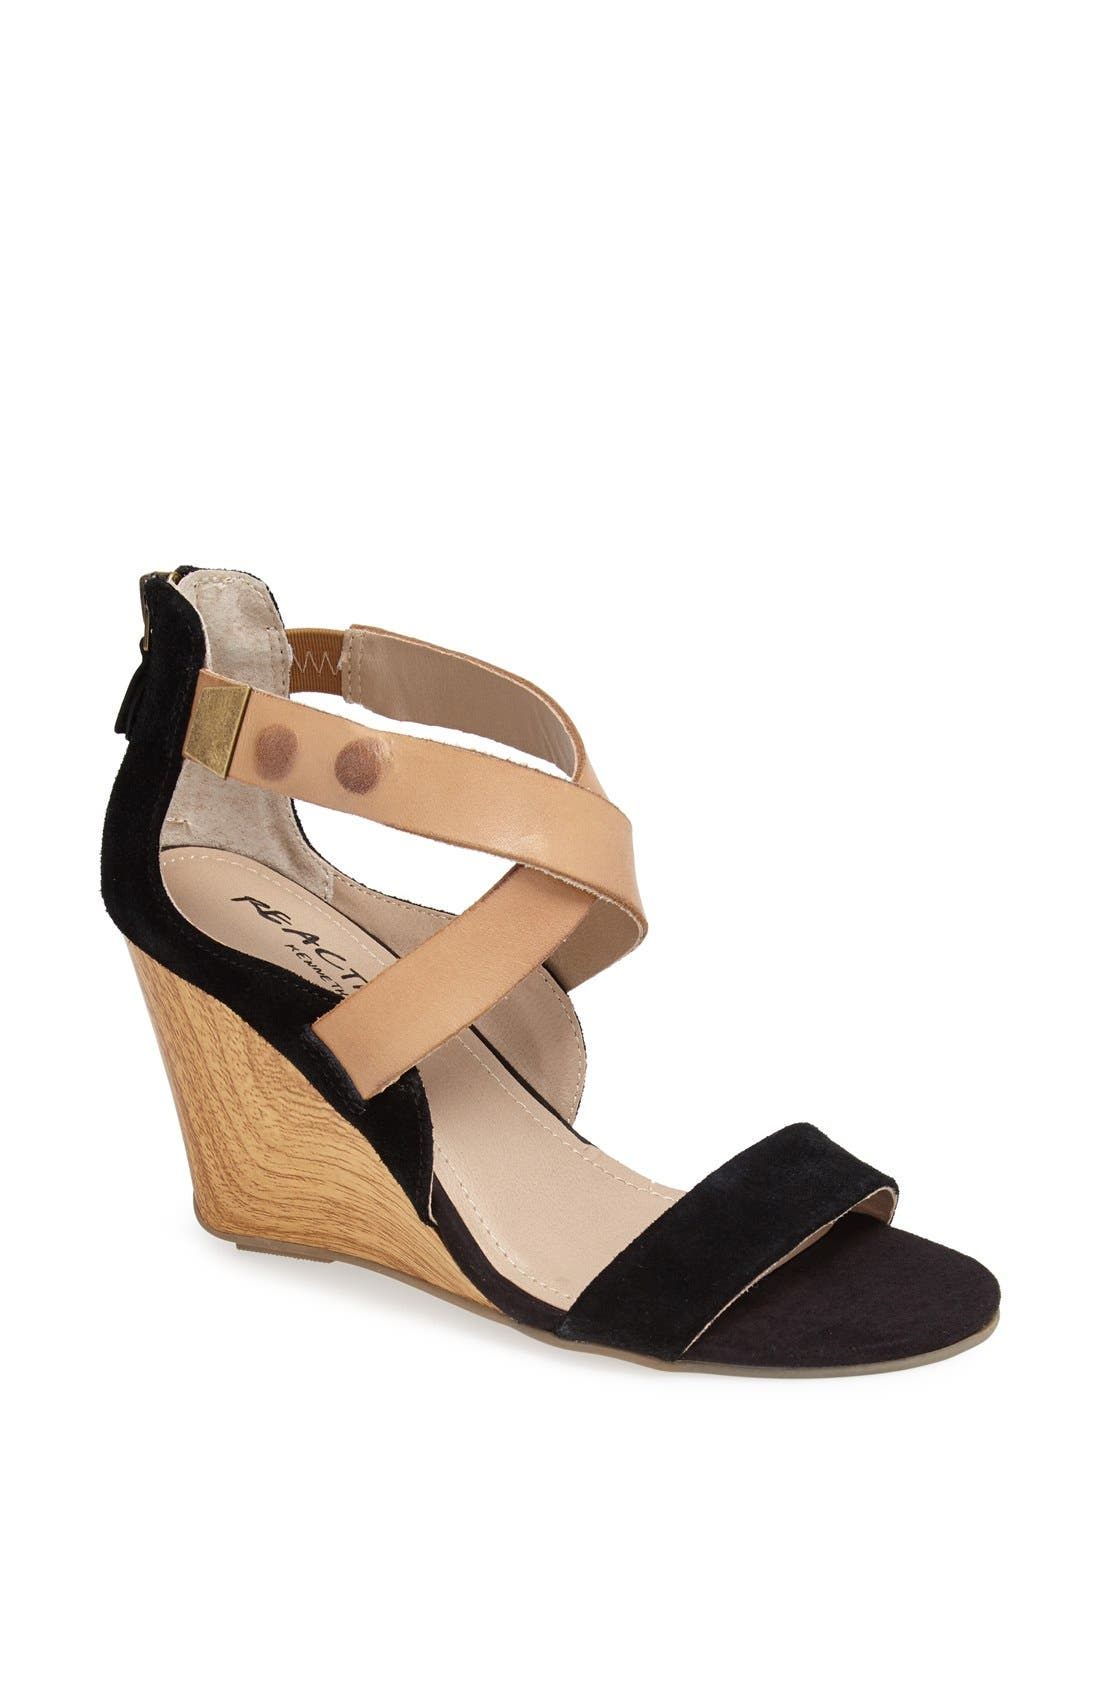 Main Image - Kenneth Cole Reaction 'Oh Ava' Wedge Sandal